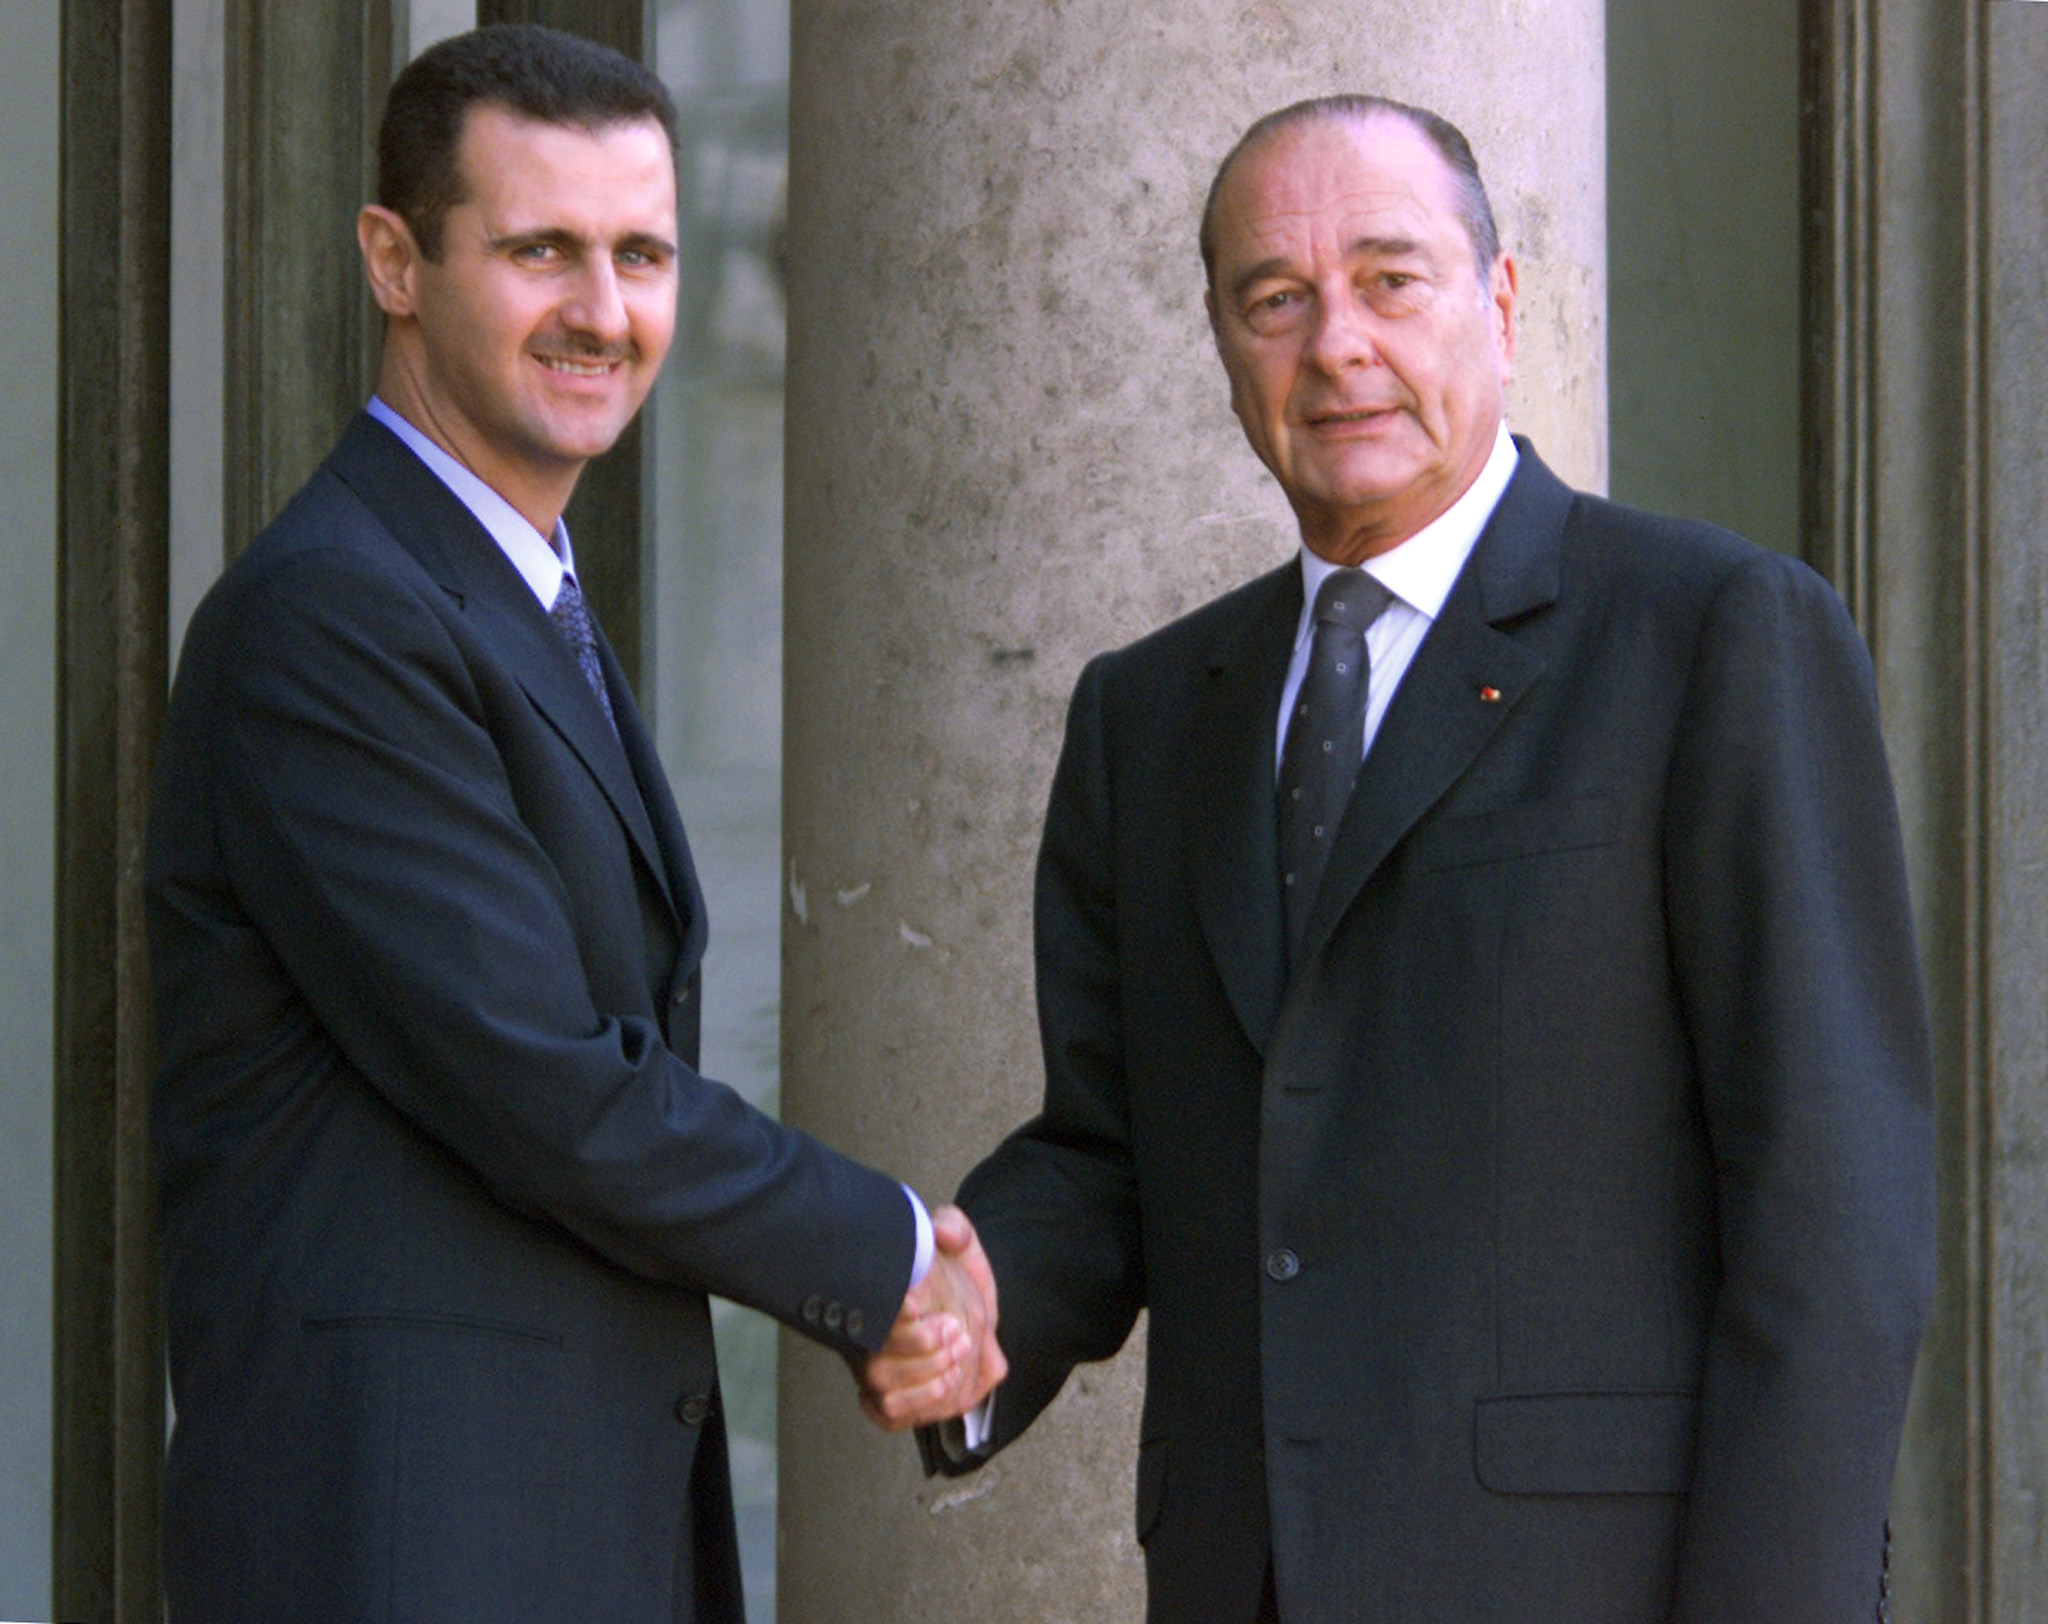 "(FILES) In this file photo taken on June 25, 2001 Syrian President Bashar al-Assad (L) is greeted by French President Jacques Chirac before their meeting at the Elysee Palace in Paris. France has initiated a procedure for the withdrawal of the Legion of Honor awarded to Syrian President Bashar al-Assad by then French President Jacques Chirac said on April 16, 2018 evening to AFP the entourage of President Emmanuel Macron. ""The Elysee confirms that a disciplinary procedure of withdrawal of the Legion of Honor"", the highest French distinction, ""against Bashar al-Assad has been committed,"" said the Presidency of the Republic. / AFP PHOTO / Jack GUEZ"